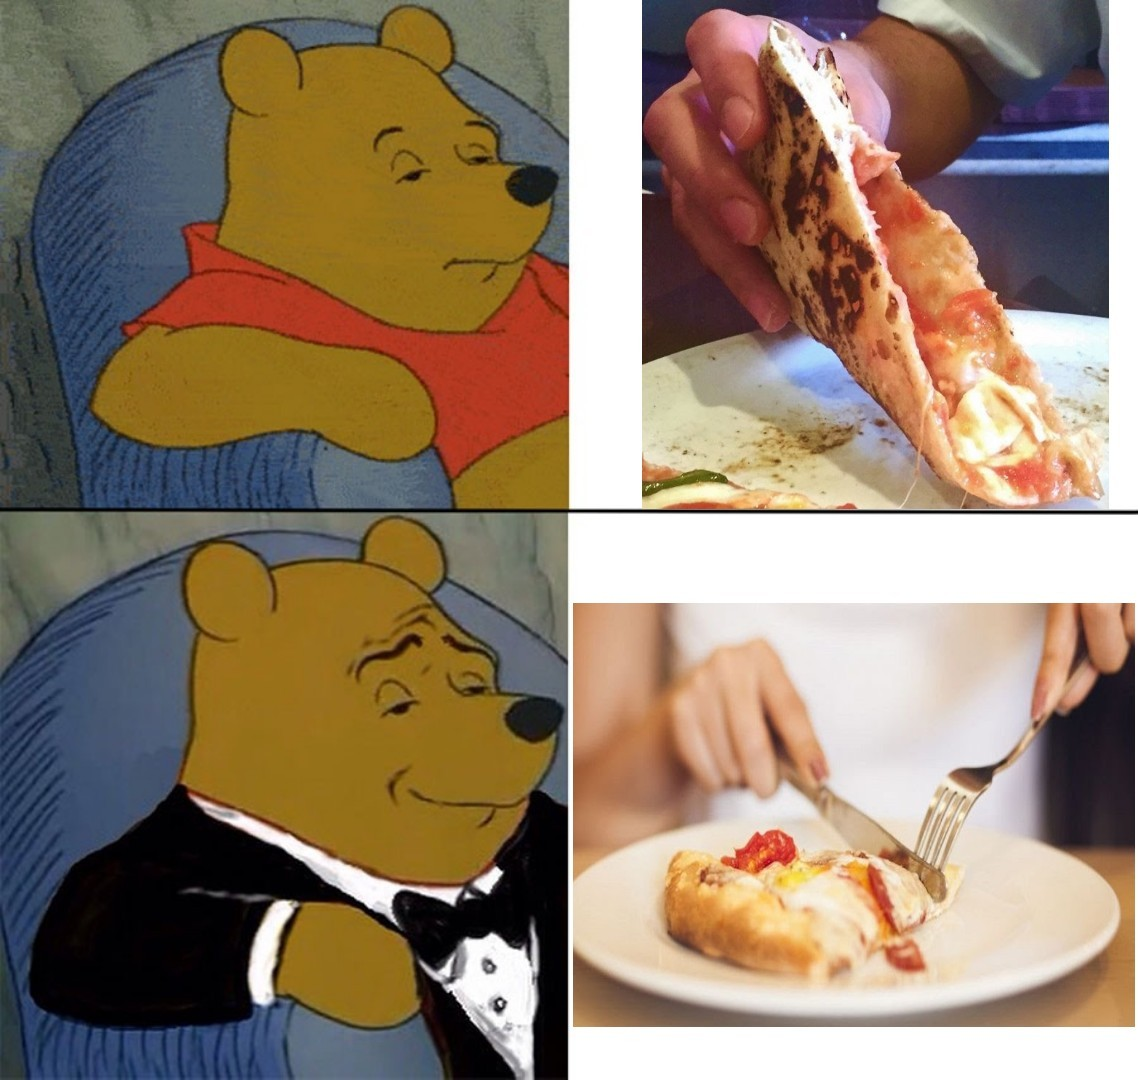 Mangiare la pizza like a sir - meme